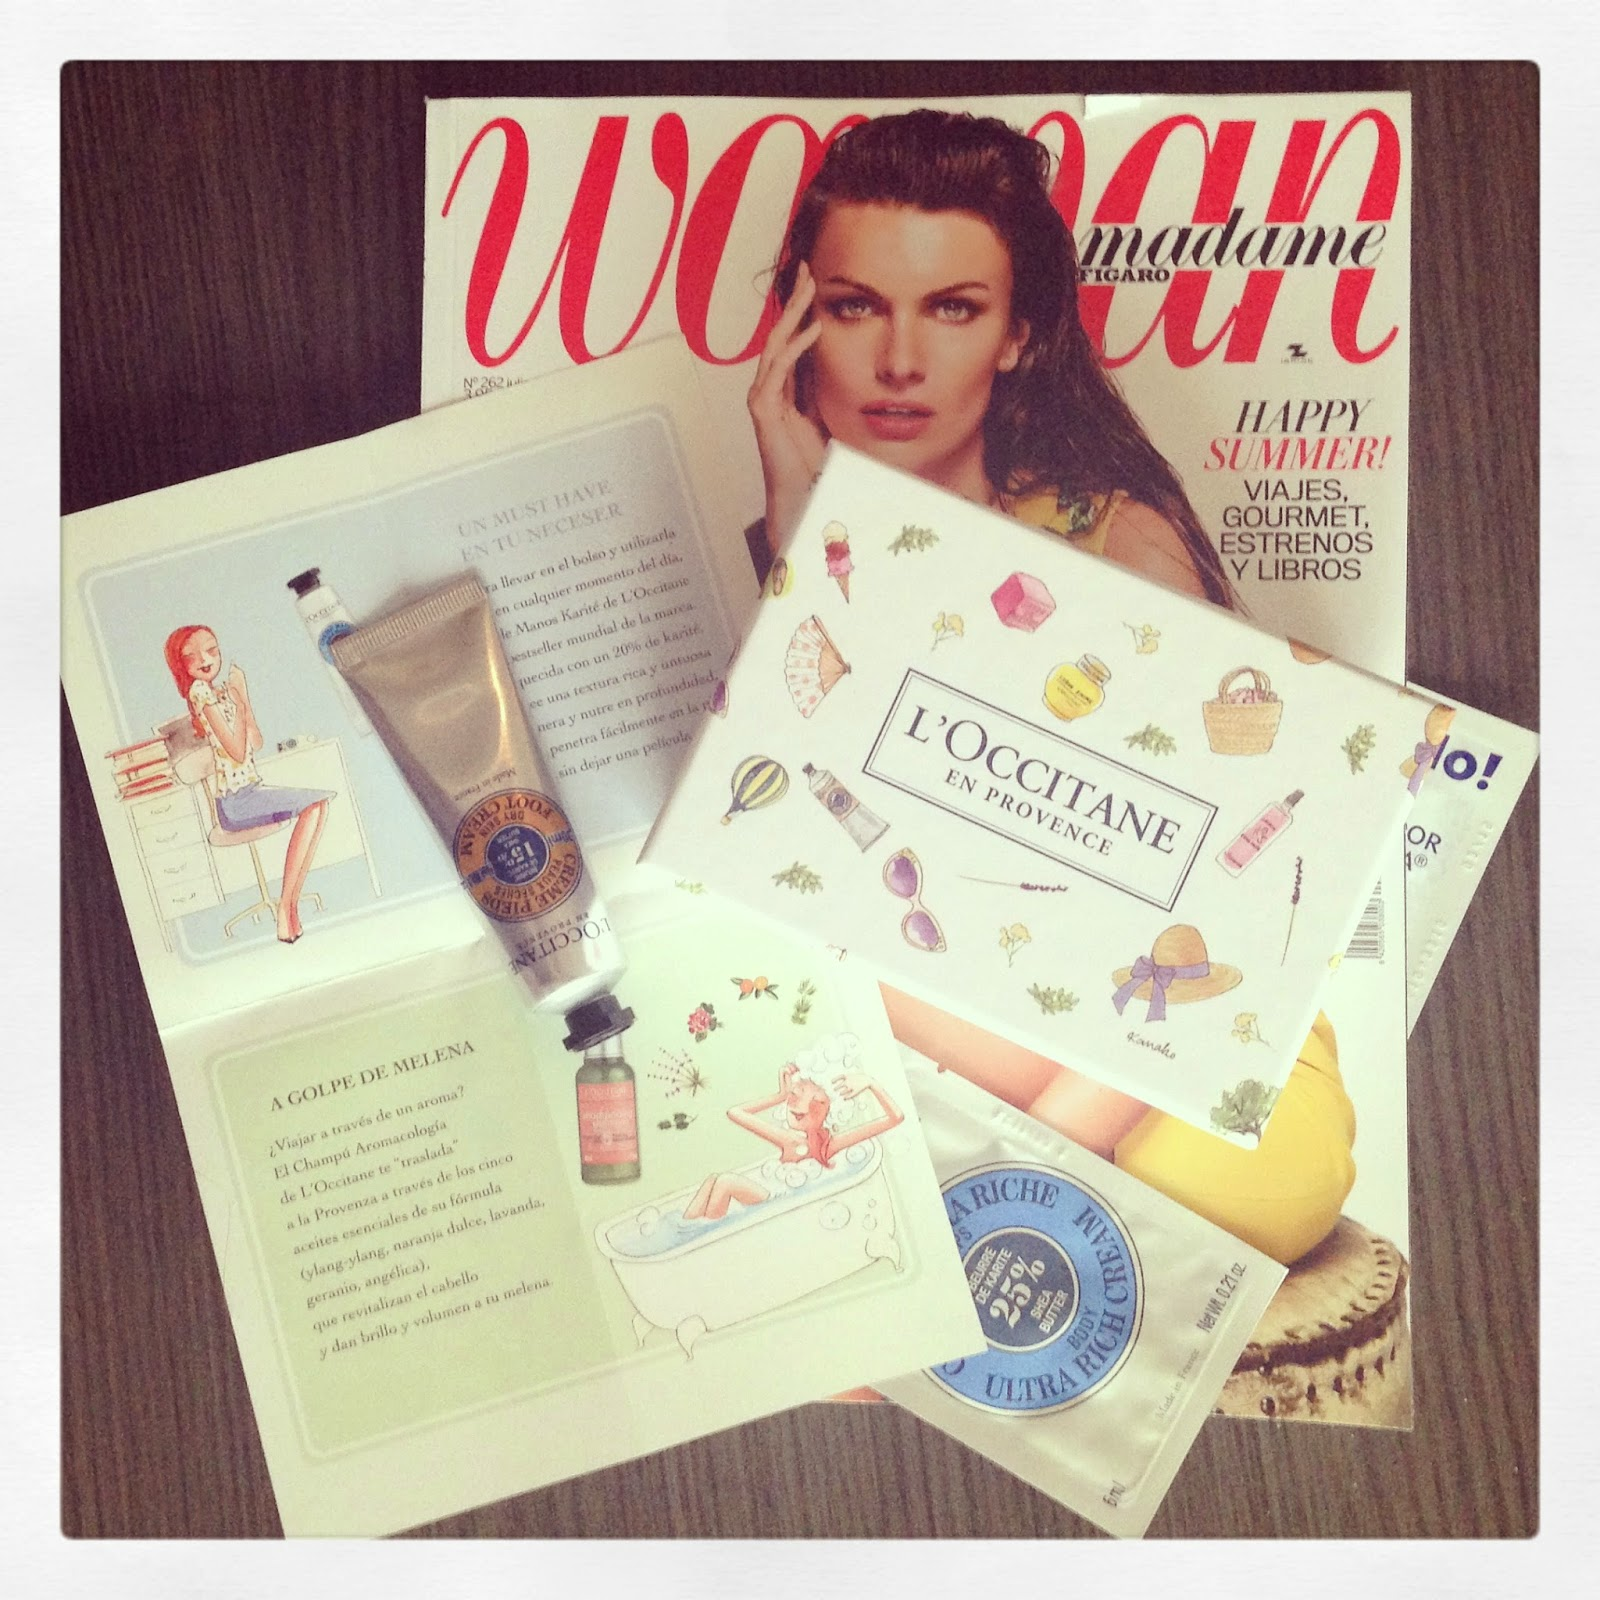 Mini Box de Woman y L'Occitane... irresistible.